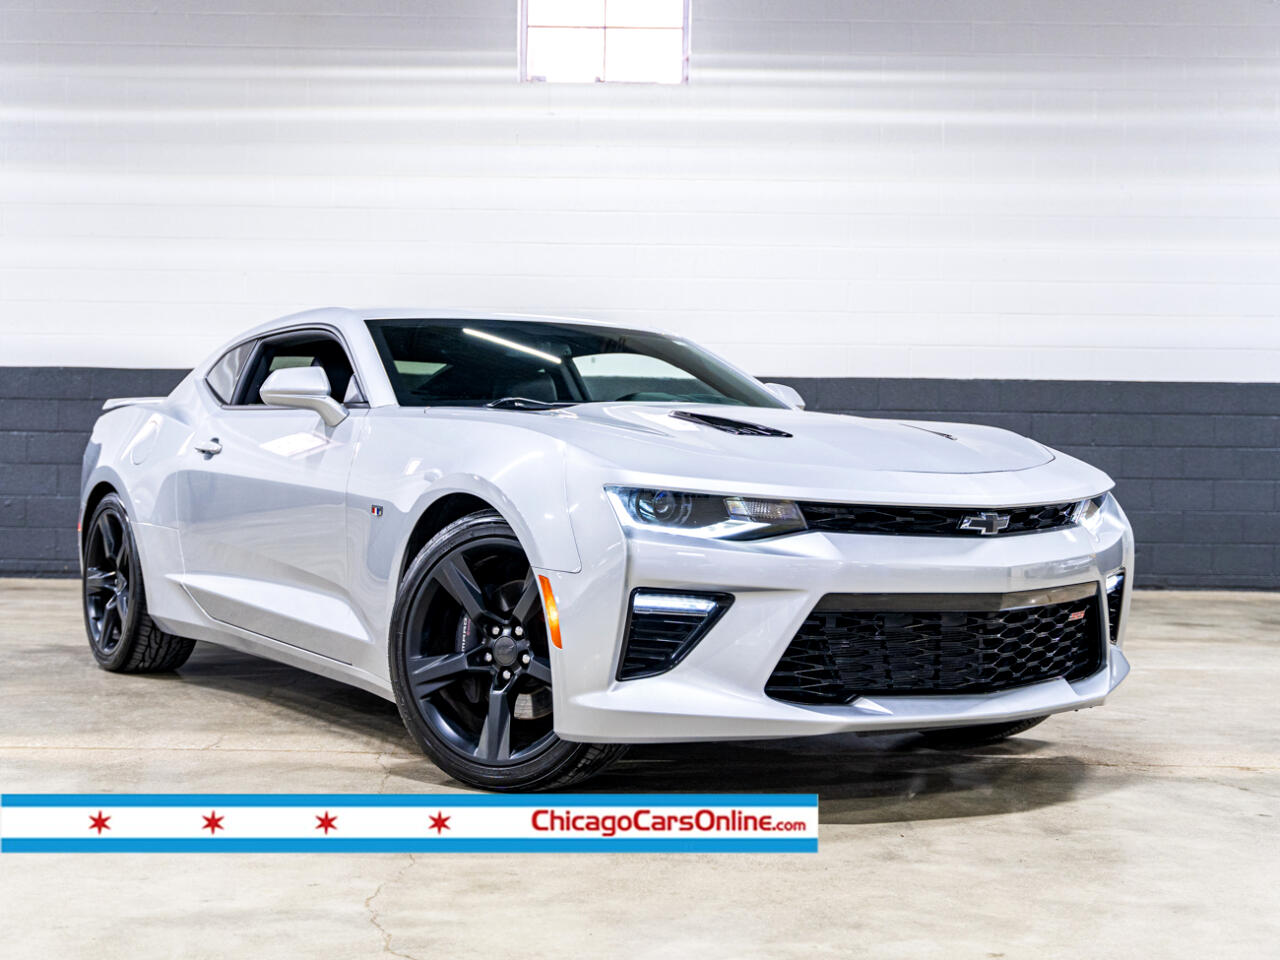 Chevrolet Camaro 2SS Coupe 6M 2018